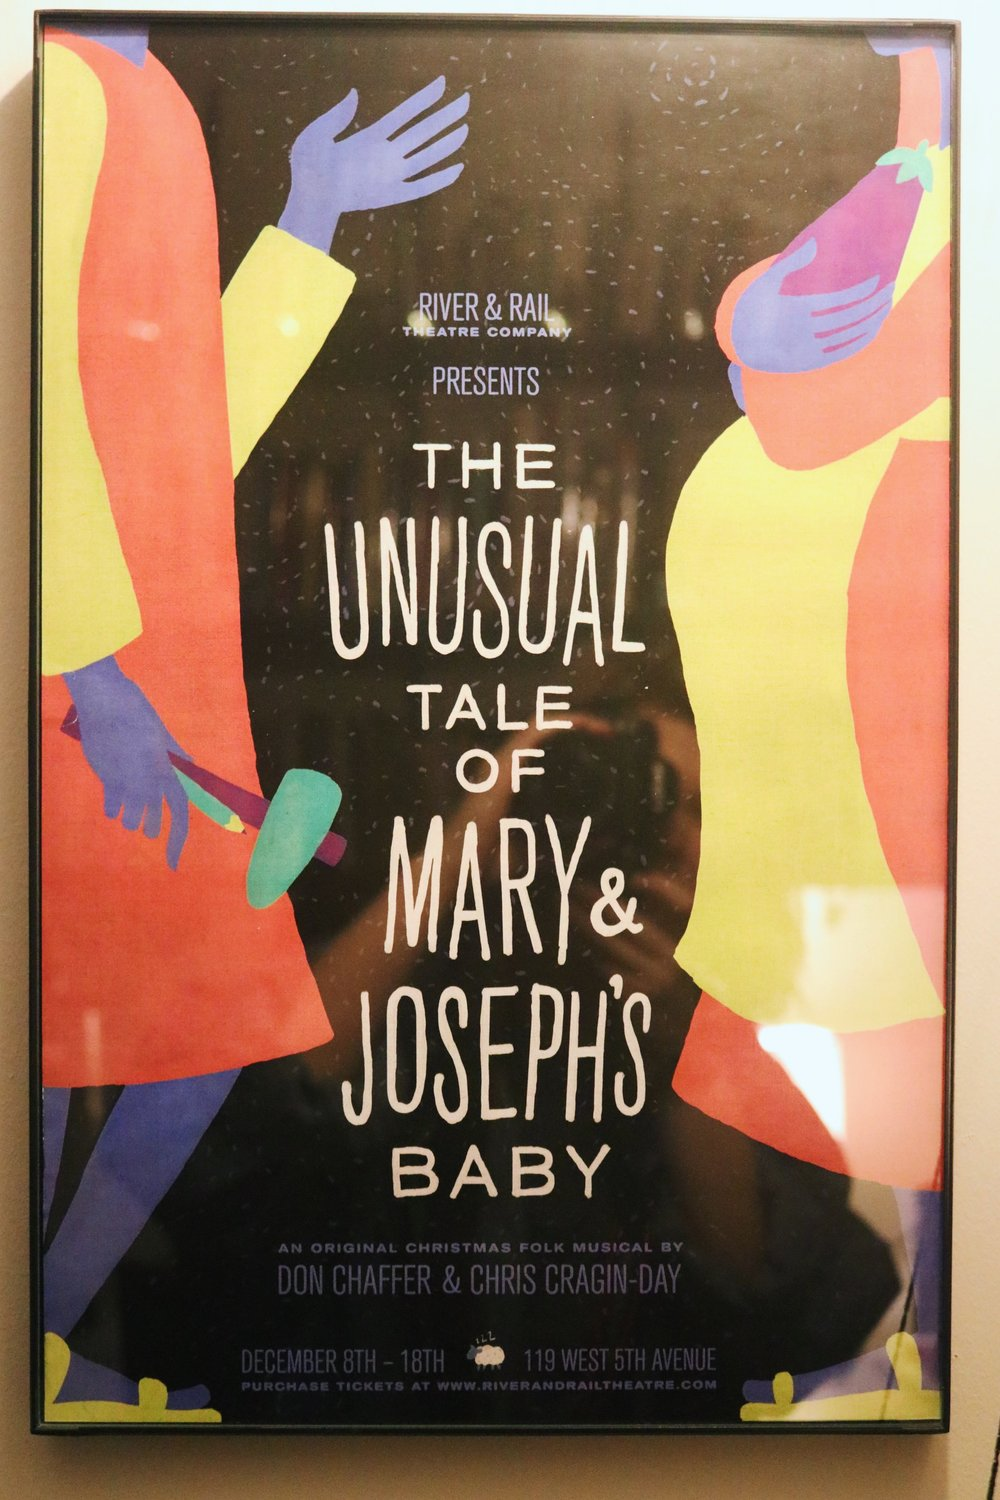 A poster of Don Chaffer and Cragin-Day's musical, The Unusual Tale is Mary & Joseph's Baby, hangs on the wall in her office. || Photo credit to Rachel Freeman